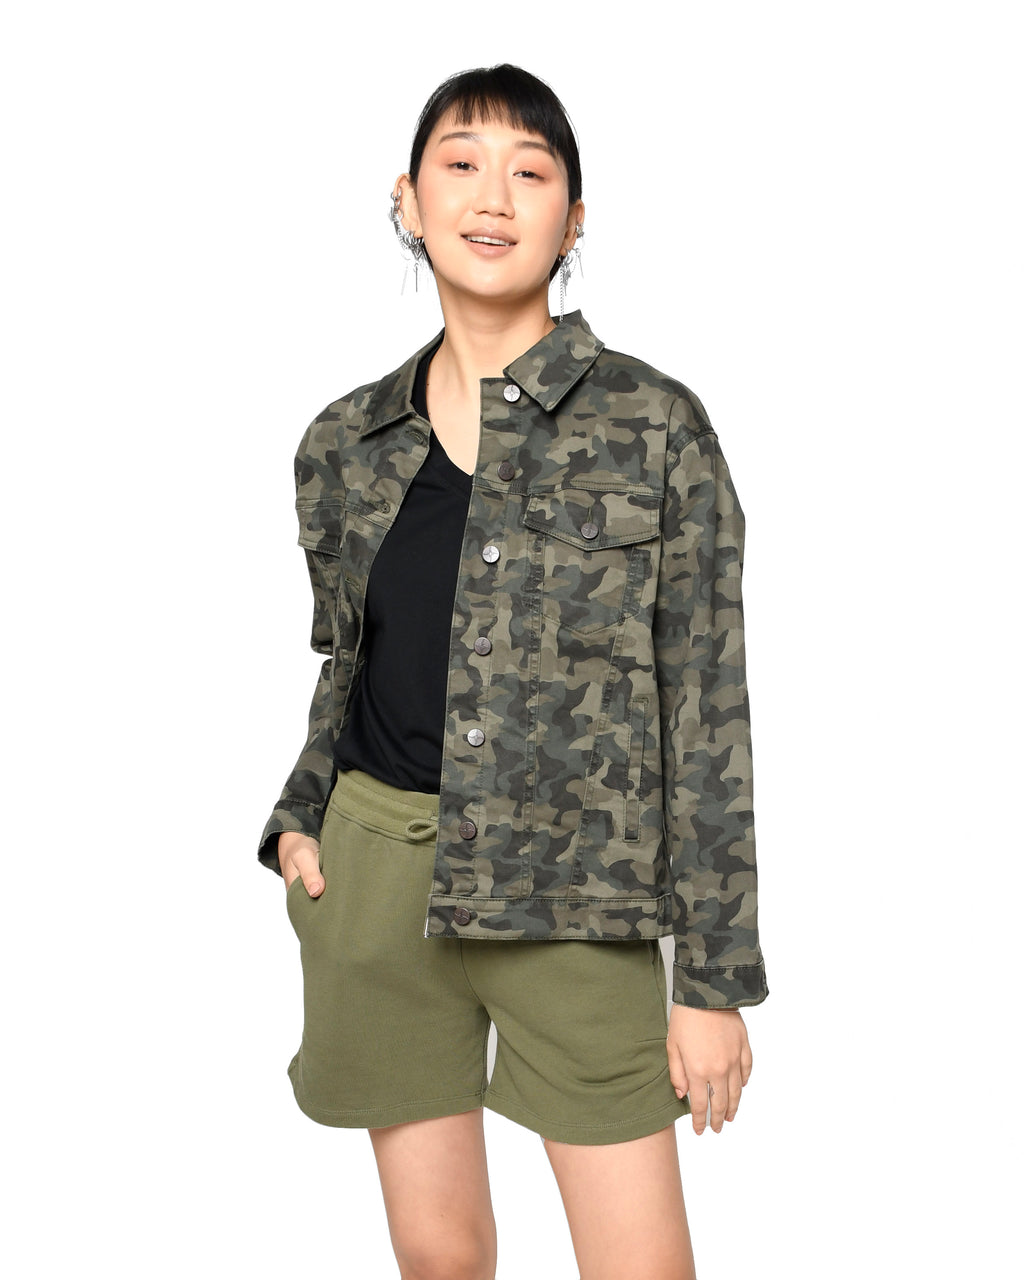 CJ18633 - CAMO OVERSIZED DENIM JACKET - outerwear - jackets - Camo is the new neutral. Our oversized camo denim jacket is the perfect lightweight jacket for any wardrobe. Made from ultra-soft stretch denim. Add 1 line break Stylist Tip: Throw on over almost any outfit for a cool yet casual look.